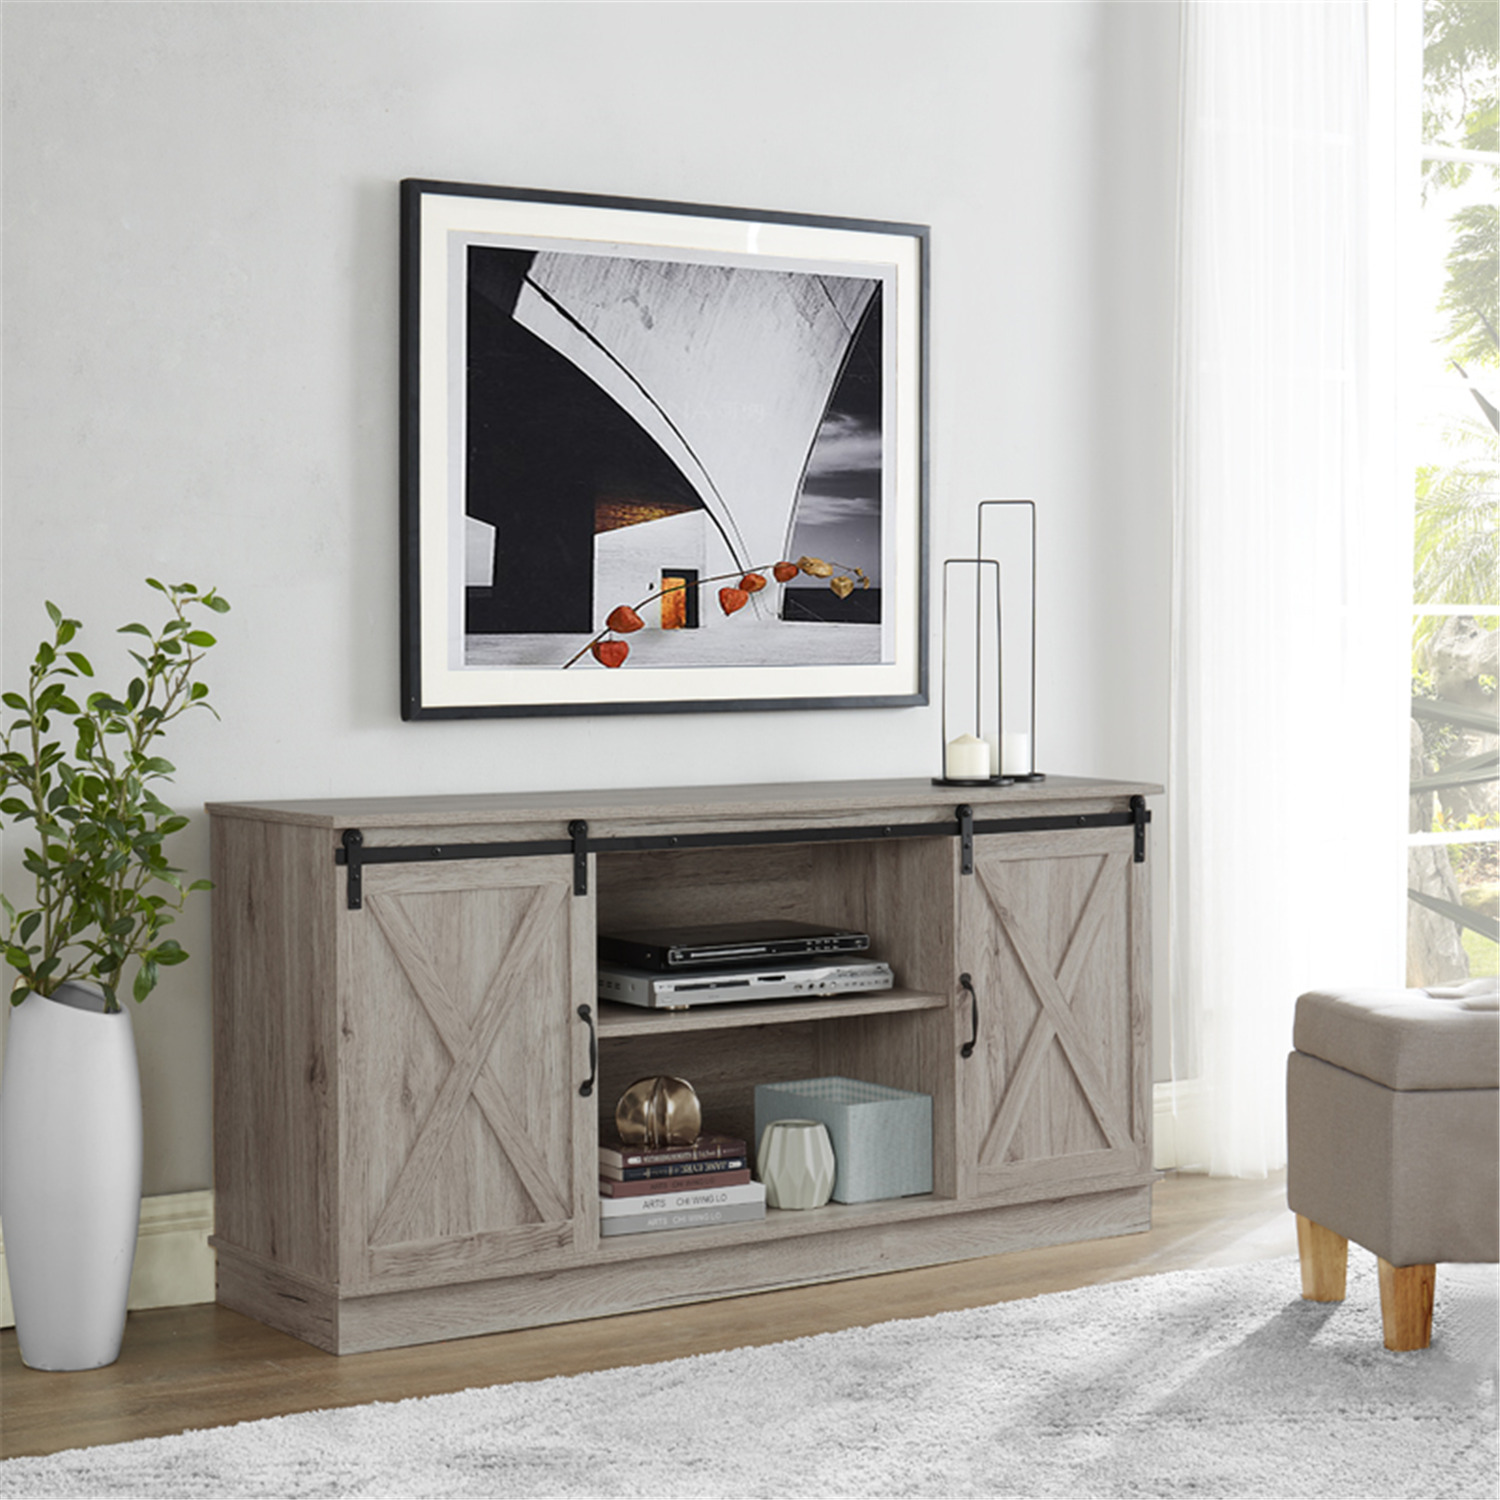 Naomi Home Rylee Farmhouse Style 60″ TV Console Cabinet With Sliding Barn Doors